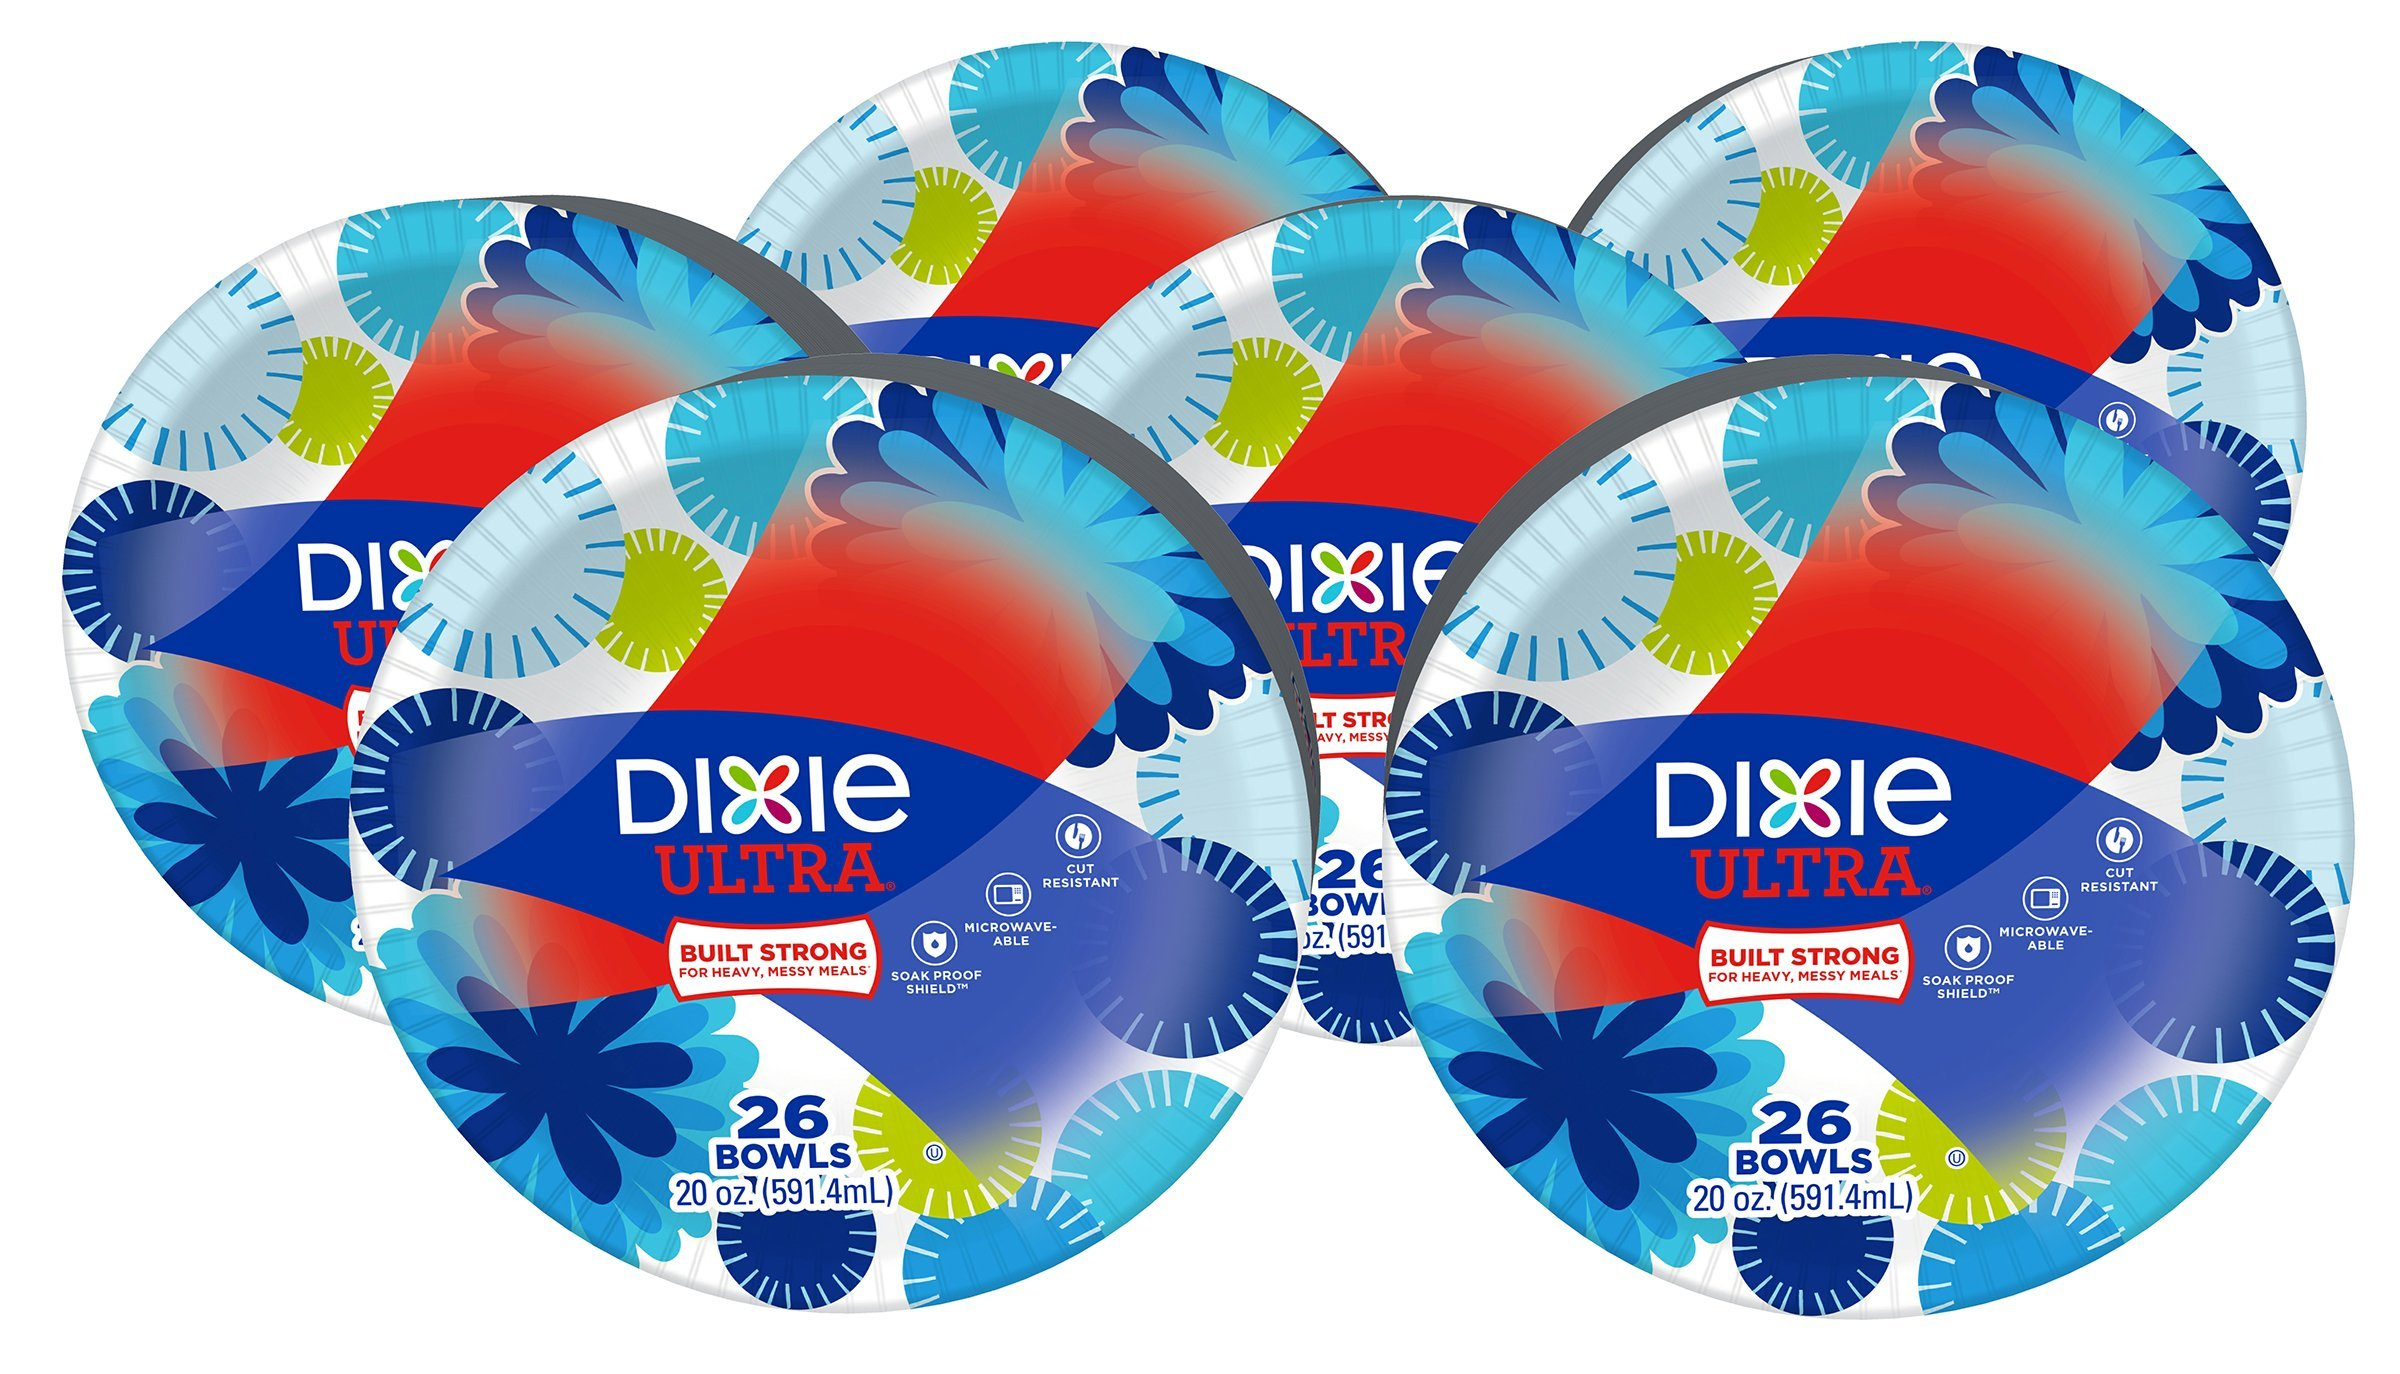 Dixie Ultra Paper Bowls, 20 Oz, 156 Count, 6 Packs of 26 Bowls, Dinner or Lunch Size Printed Disposable Bowls